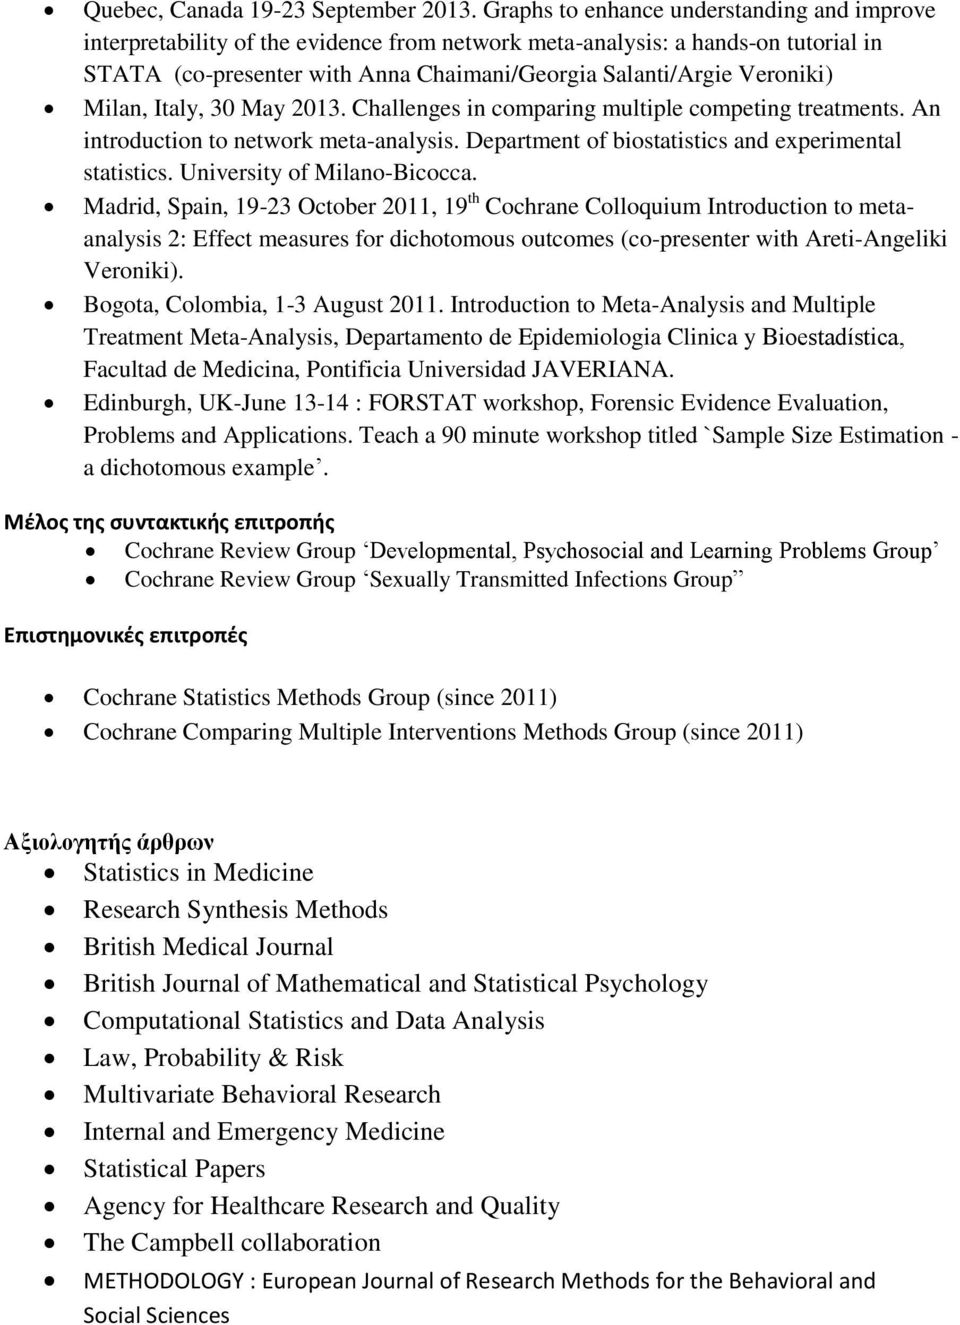 Milan, Italy, 30 May 2013. Challenges in comparing multiple competing treatments. An introduction to network meta-analysis. Department of biostatistics and experimental statistics.